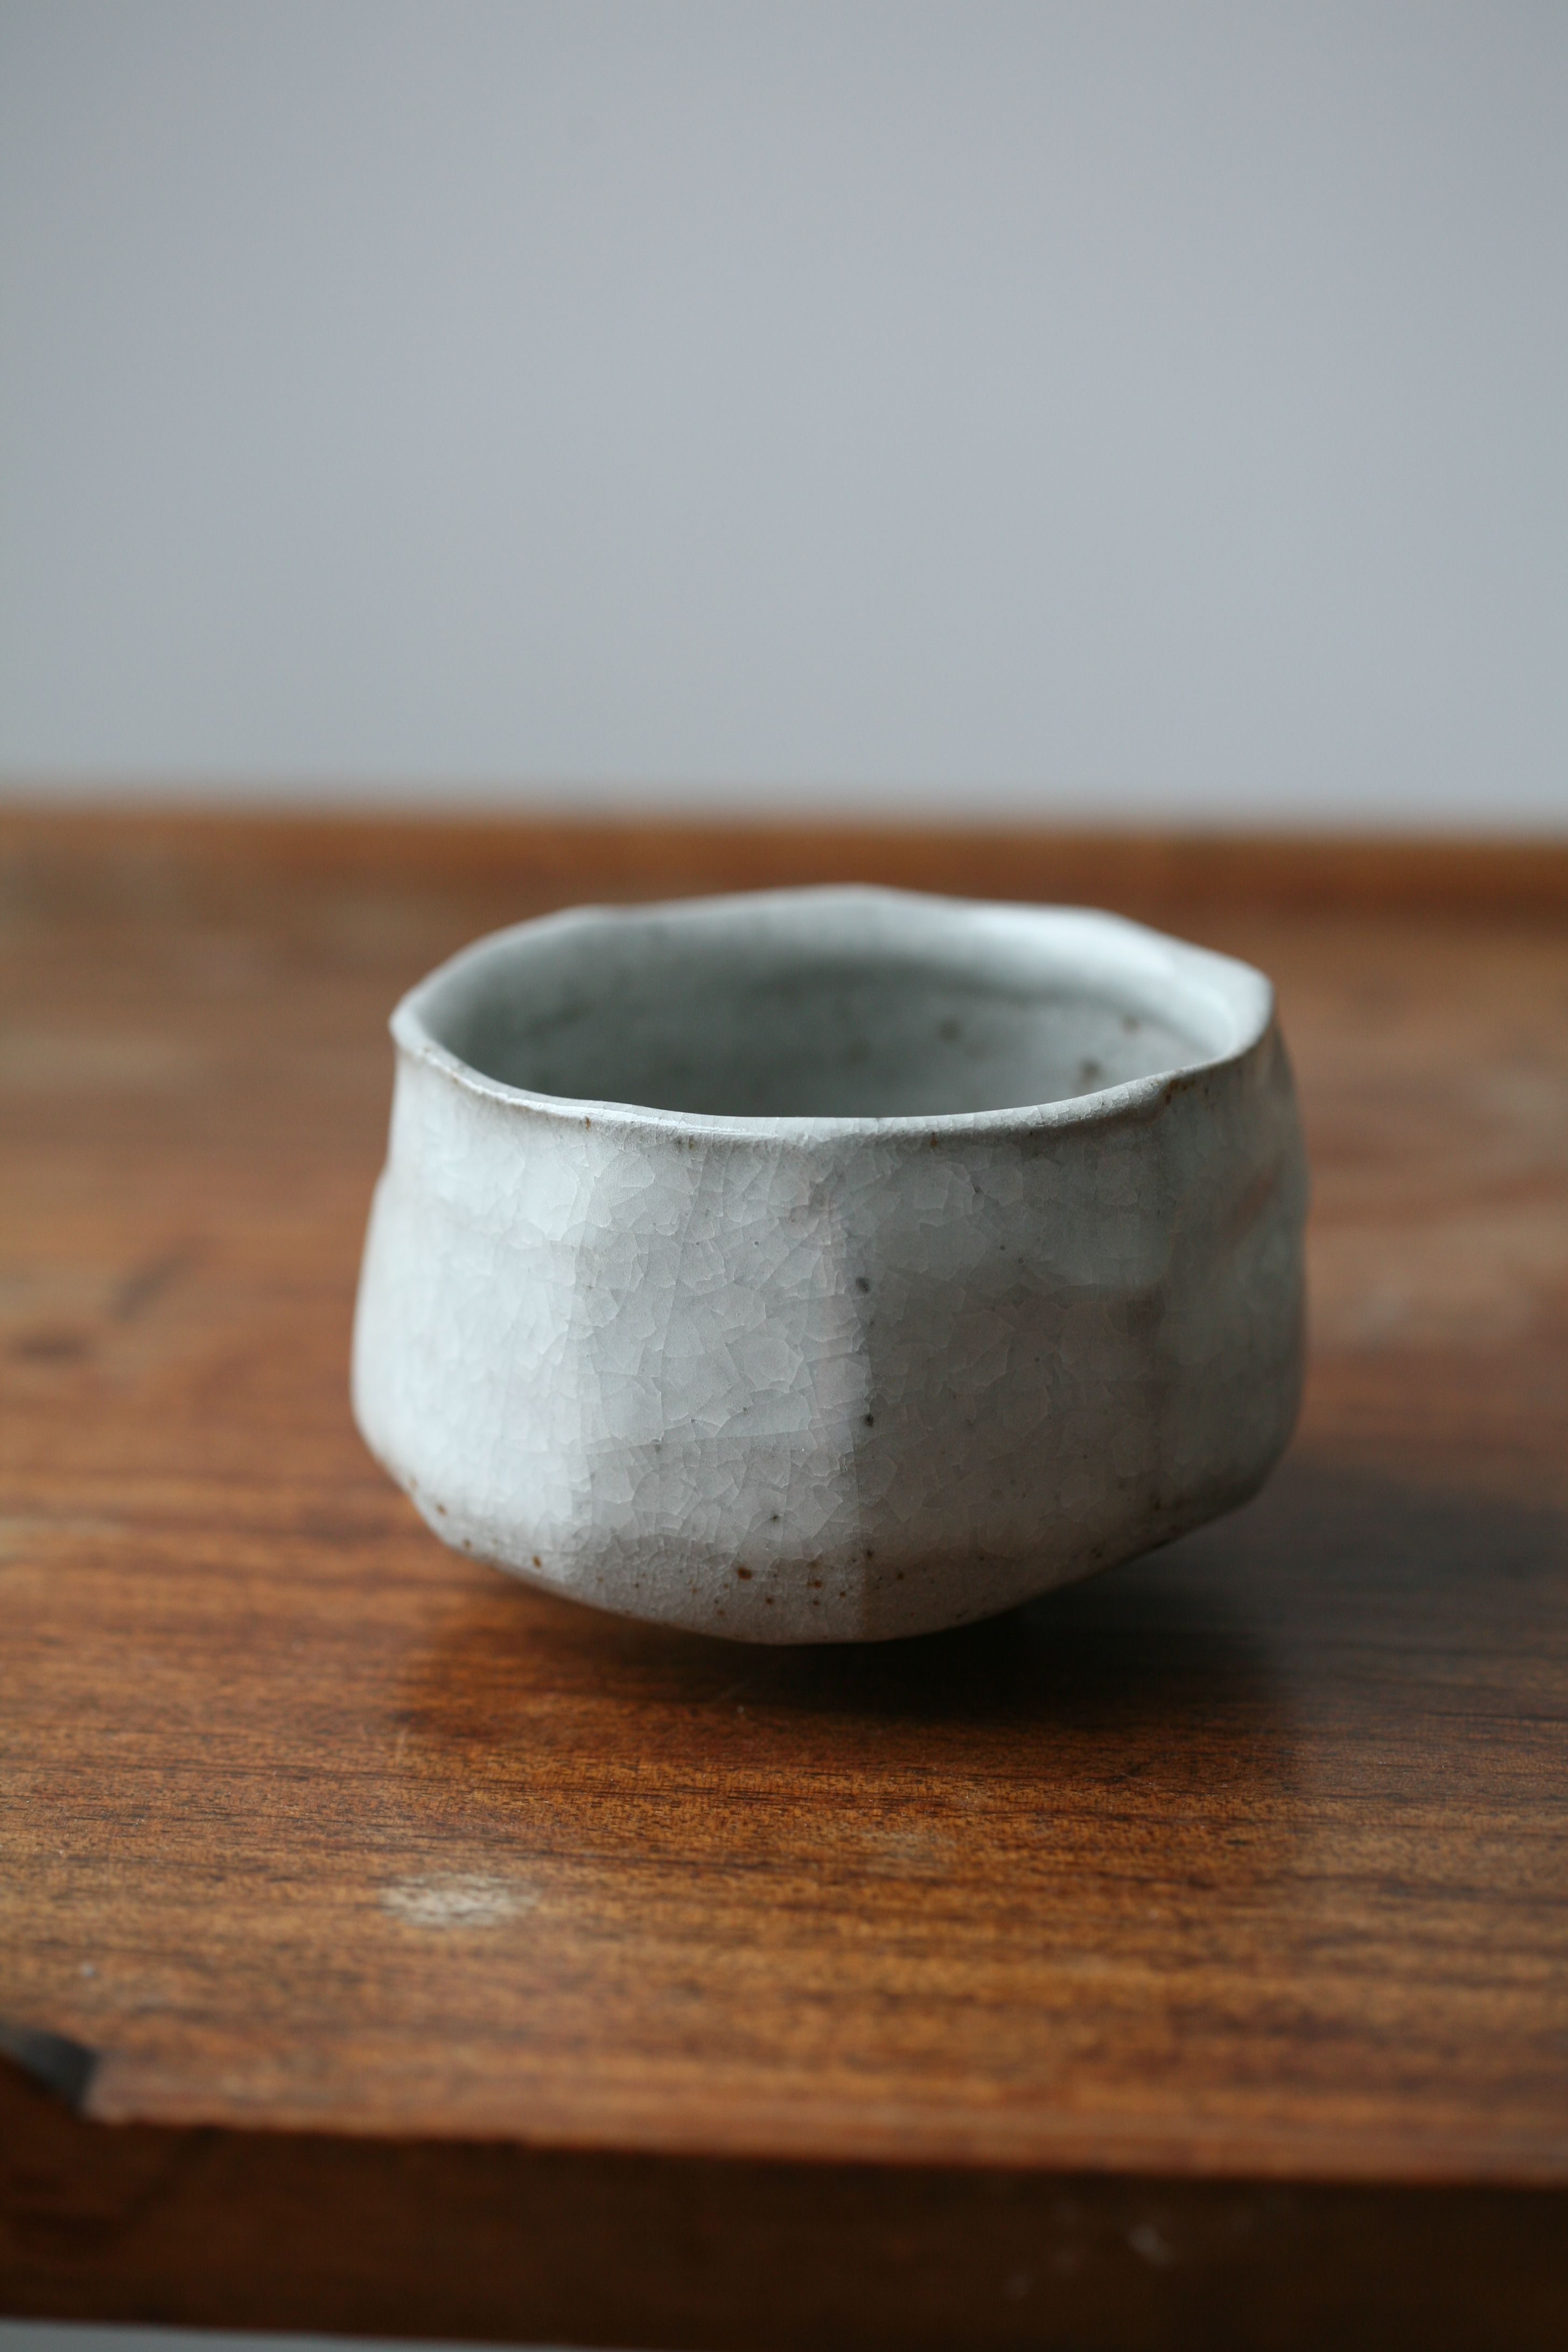 Florian Gadsby White Crackle Faceted Chawan Tea Bowl Reduction Fired To 1280ºc Tea Bowls Ceramic Pottery Ceramic Bowls